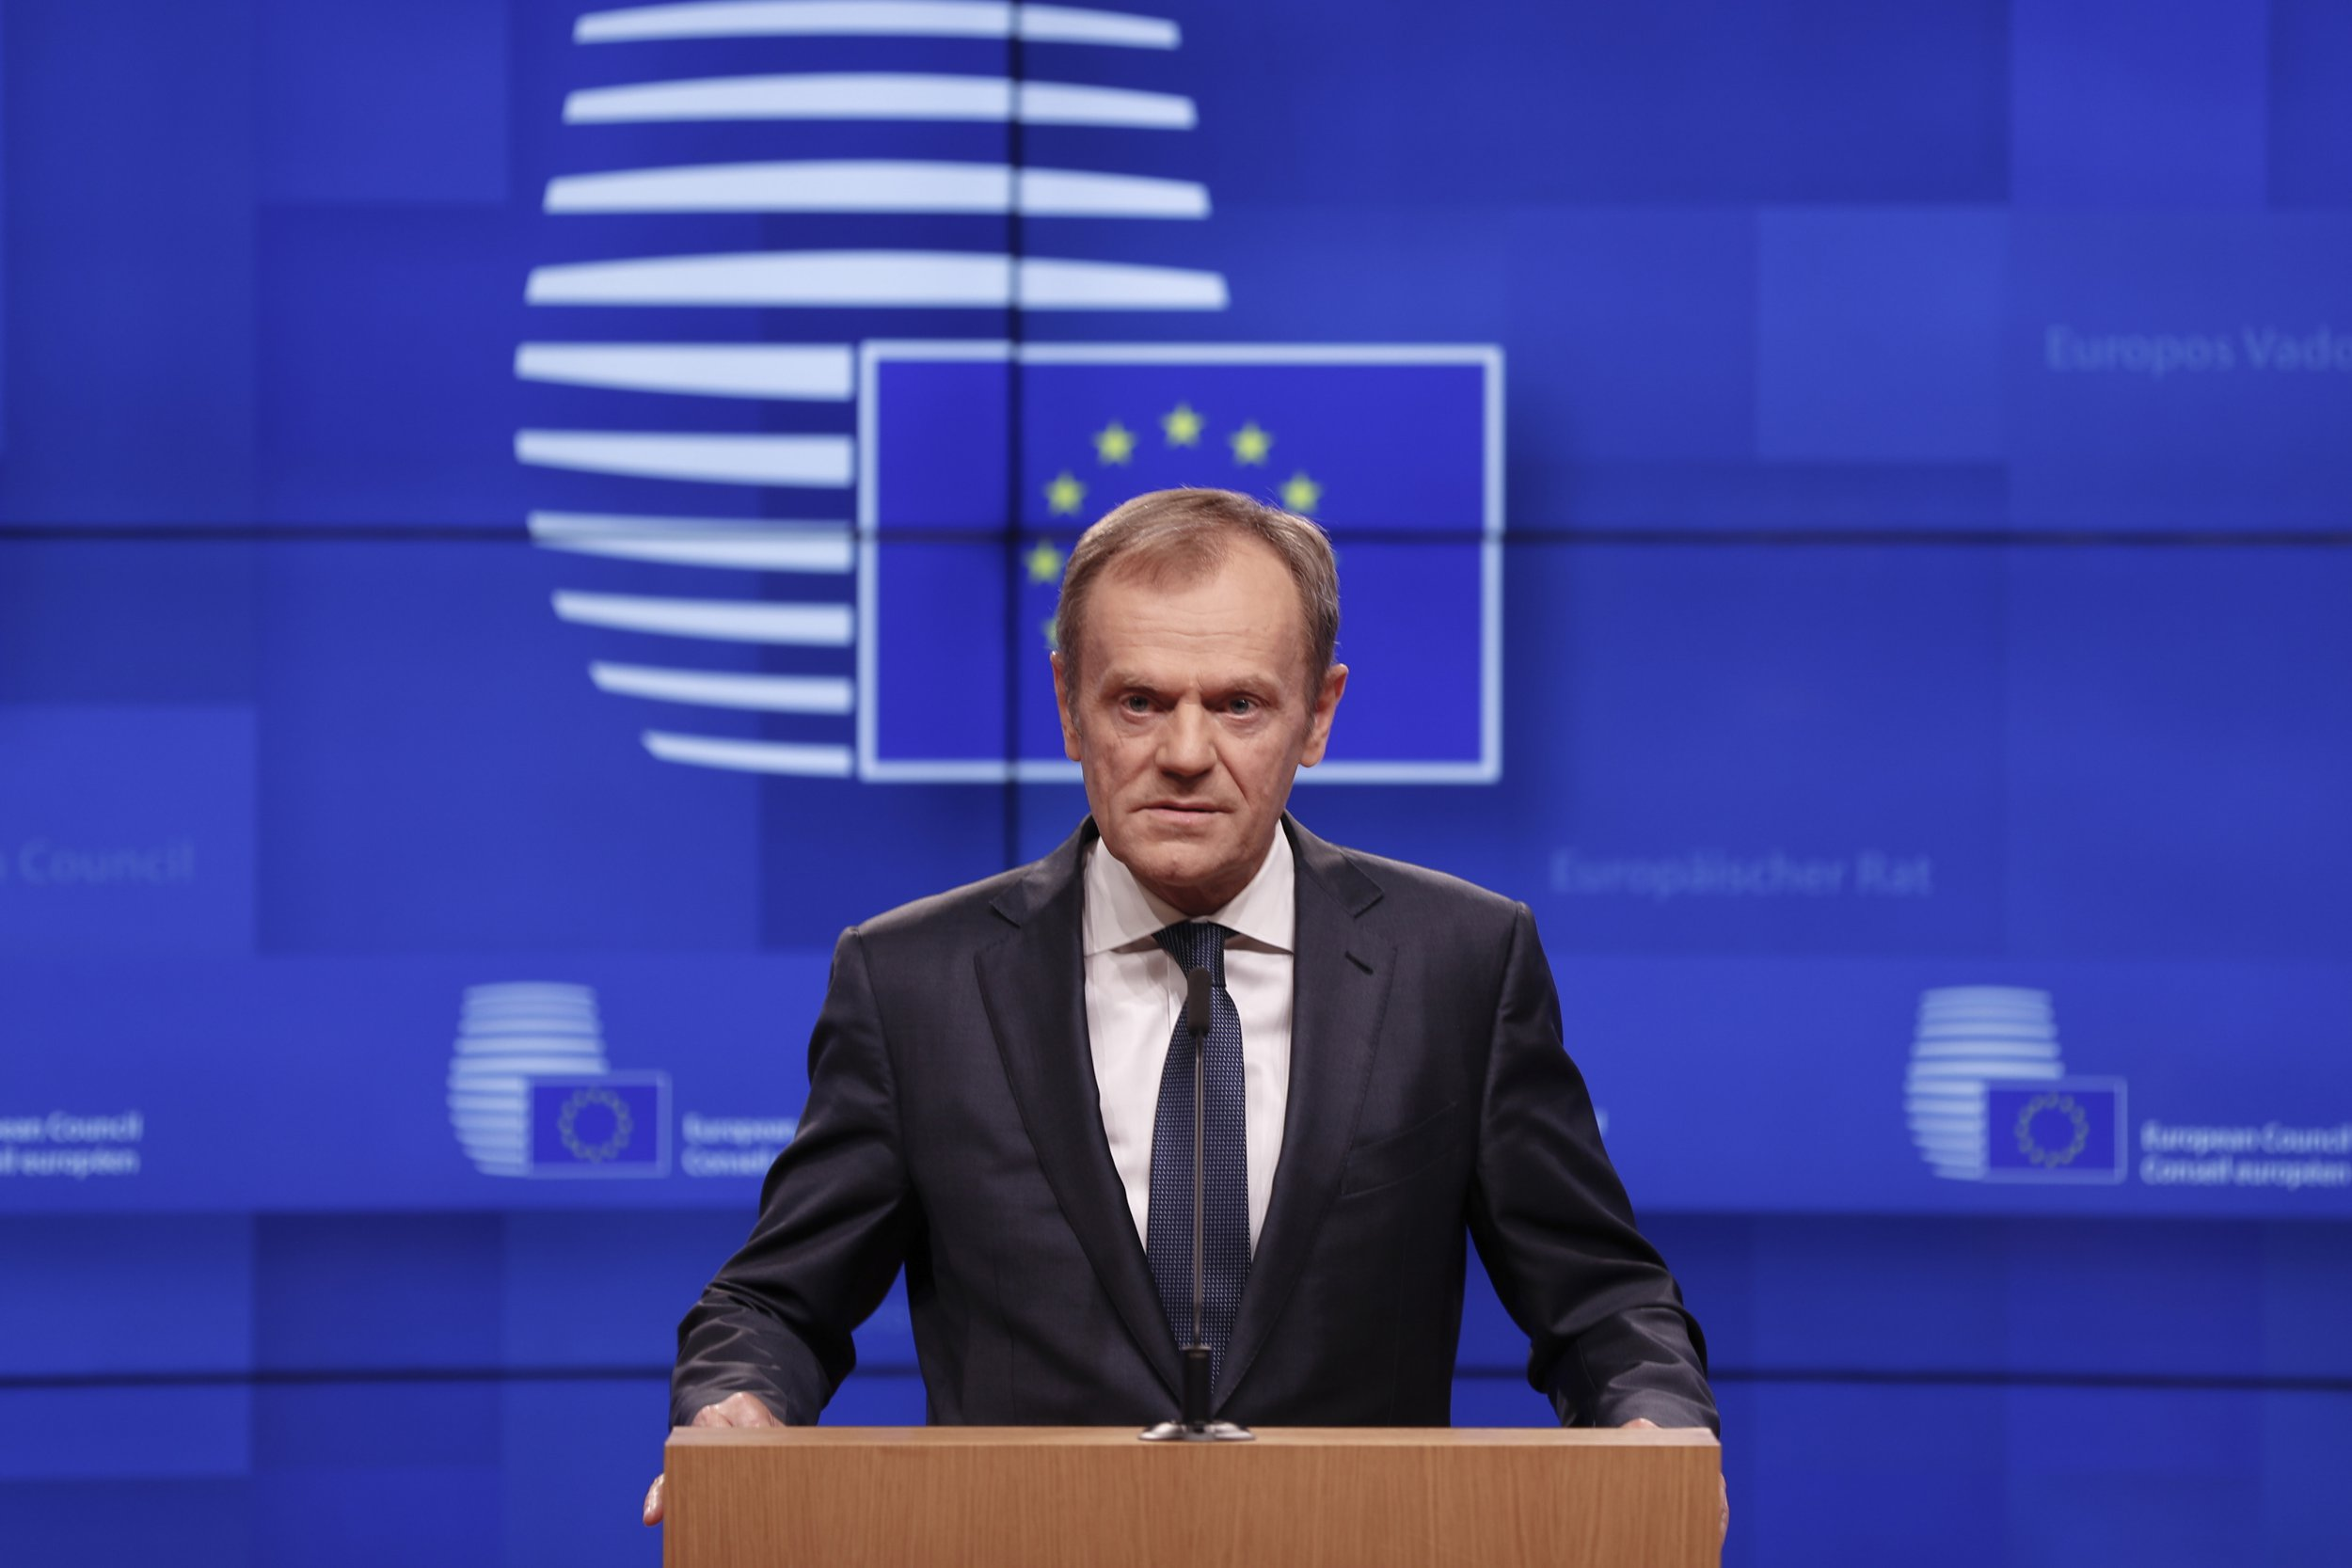 European Council President Donald Tusk speaks during a media conference on Brexit at the Europa building in Brussels, Wednesday, March 20, 2019. Despite British Prime Minister Theresa May asking for a Brexit extension deadline until June 30, the European Commission maintains that any deadline should not shoot by the May 23 start of the European elections. (AP Photo/Frank Augstein)